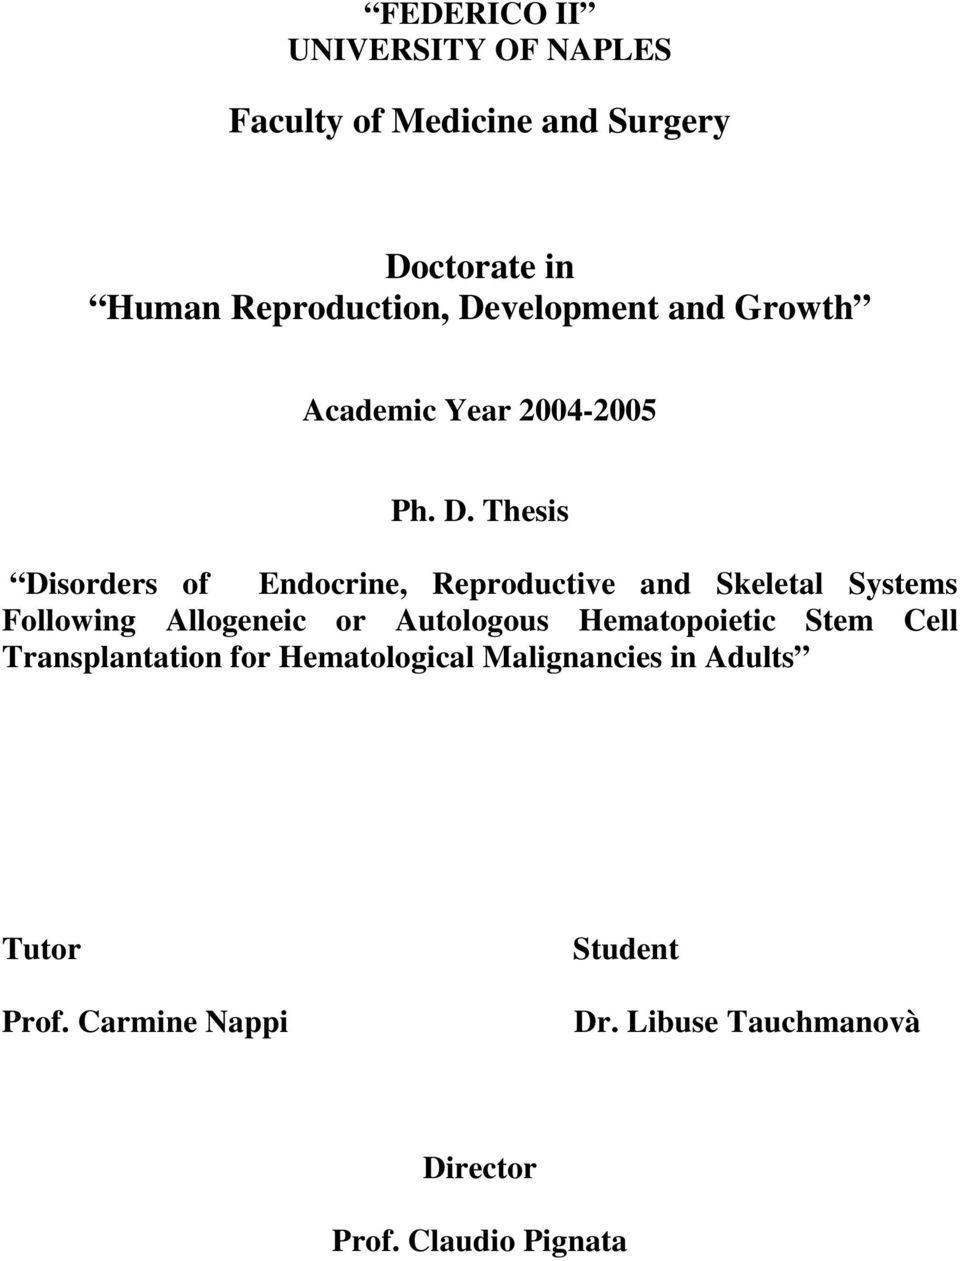 Thesis Disorders of Endocrine, Reproductive and Skeletal Systems Following Allogeneic or Autologous